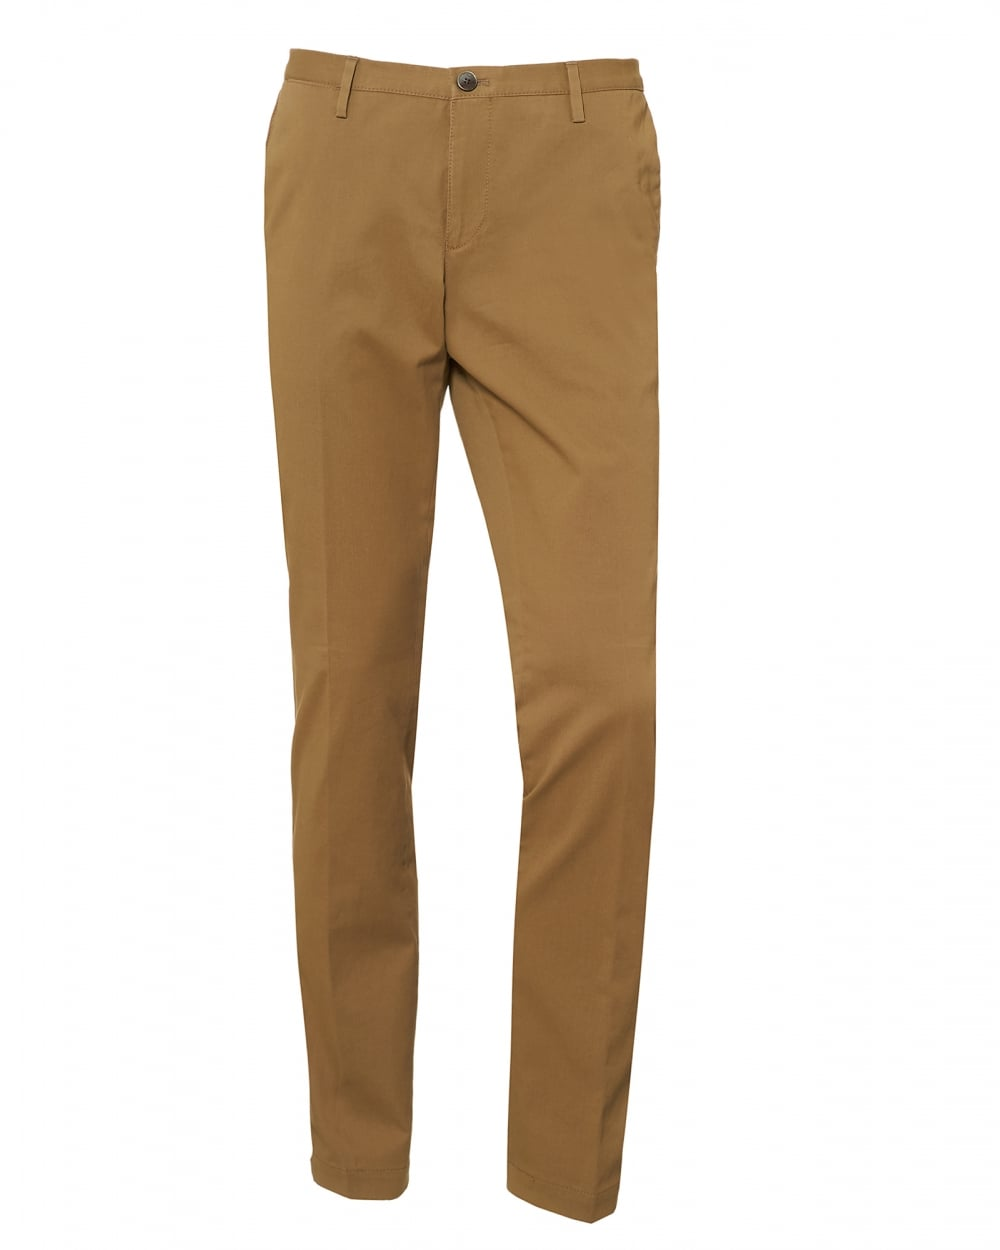 select for best diversified in packaging vivid and great in style Mens Stanino Chino, Beige Slim Fit Trouser